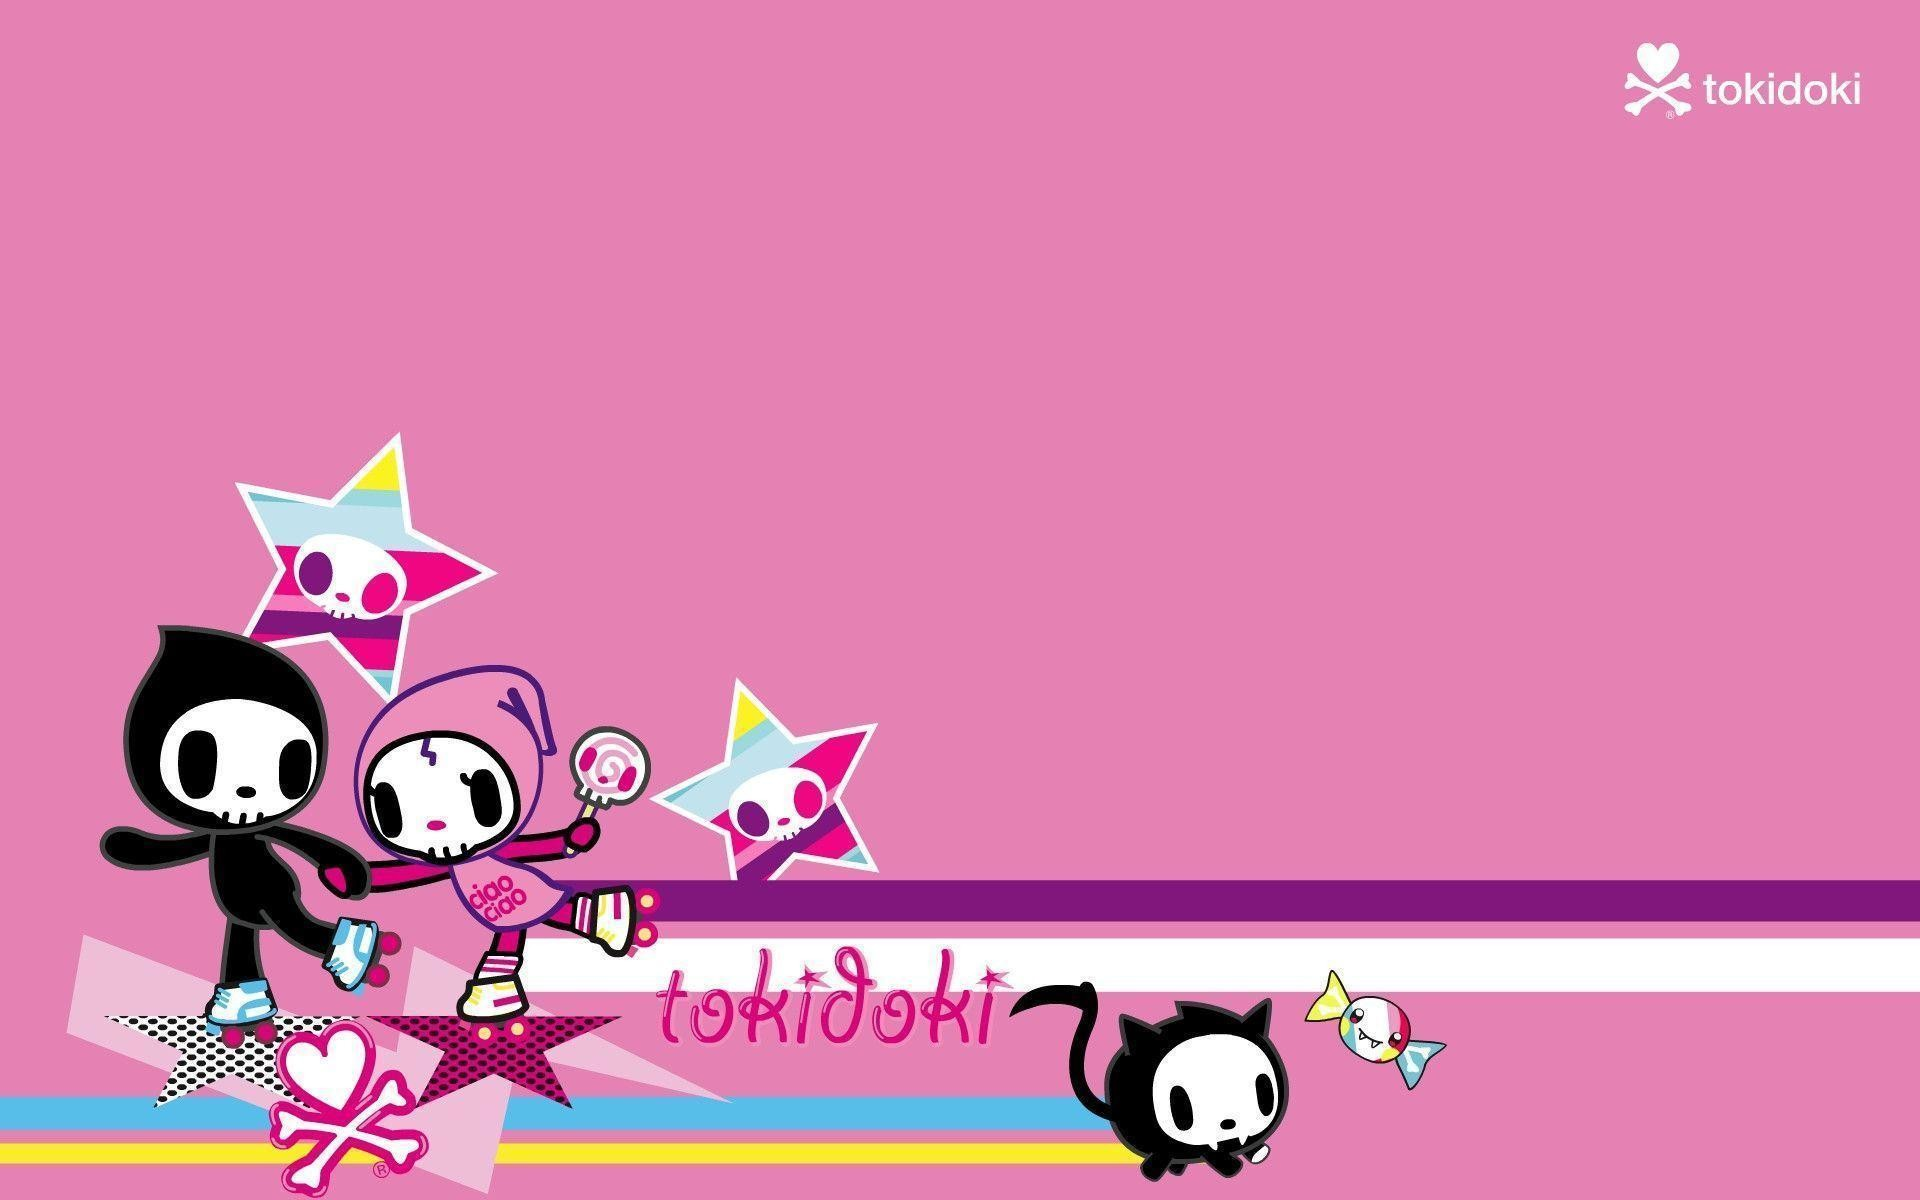 1920x1200 Tokidoki Desktop Wallpapers - Wallpaper Cave